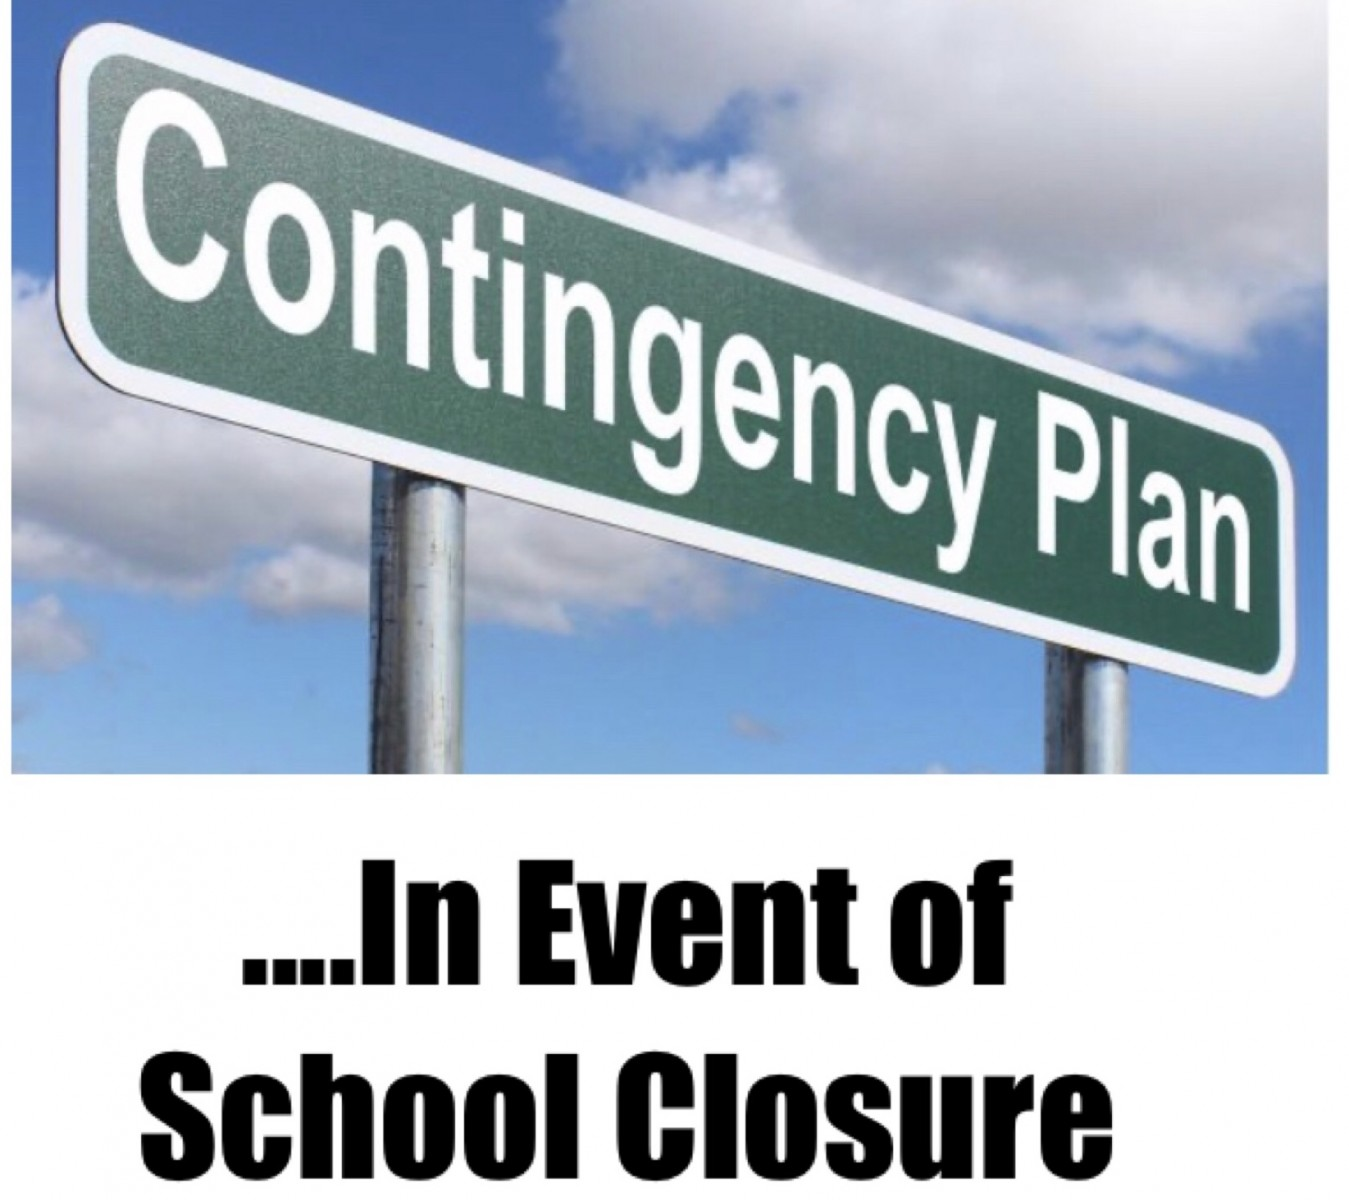 Loreto's Contingency Plan in the event of a School Closure